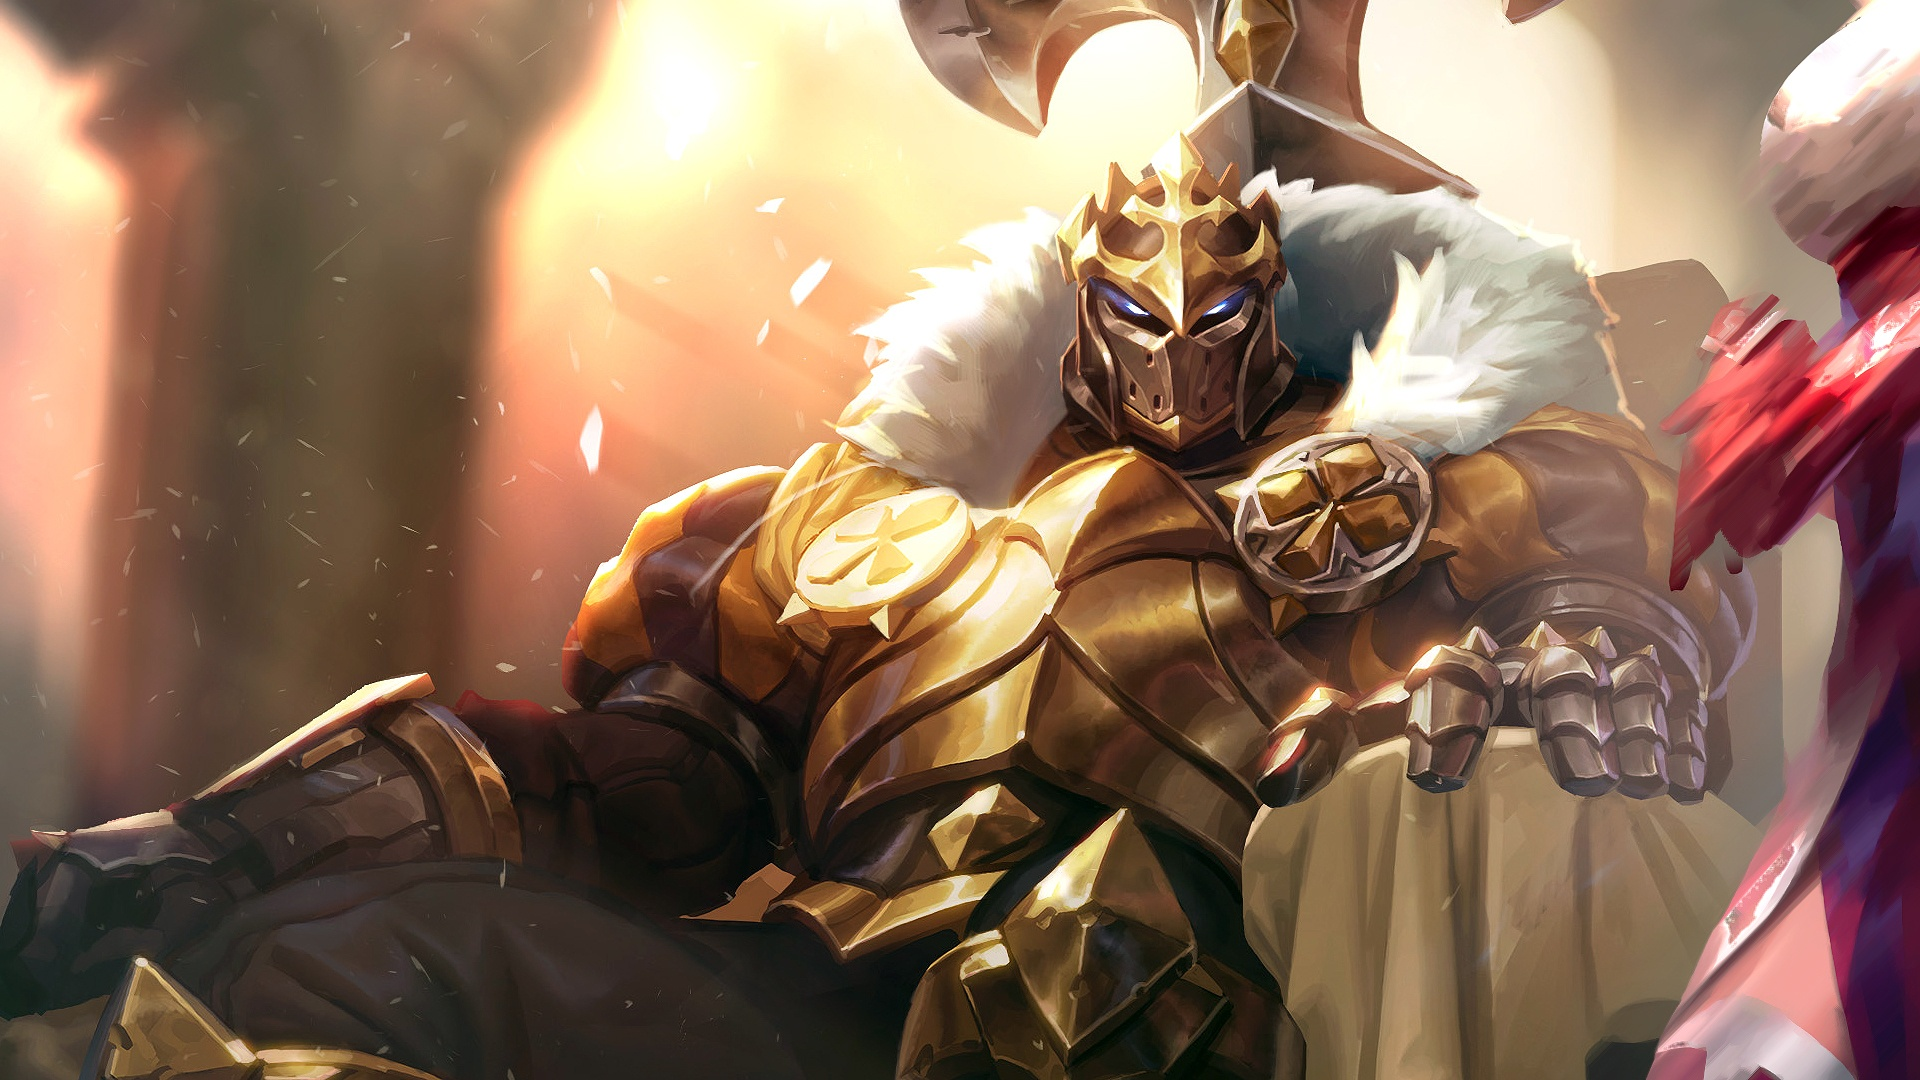 Mordekaiser was played in the LCS last week, and he has a